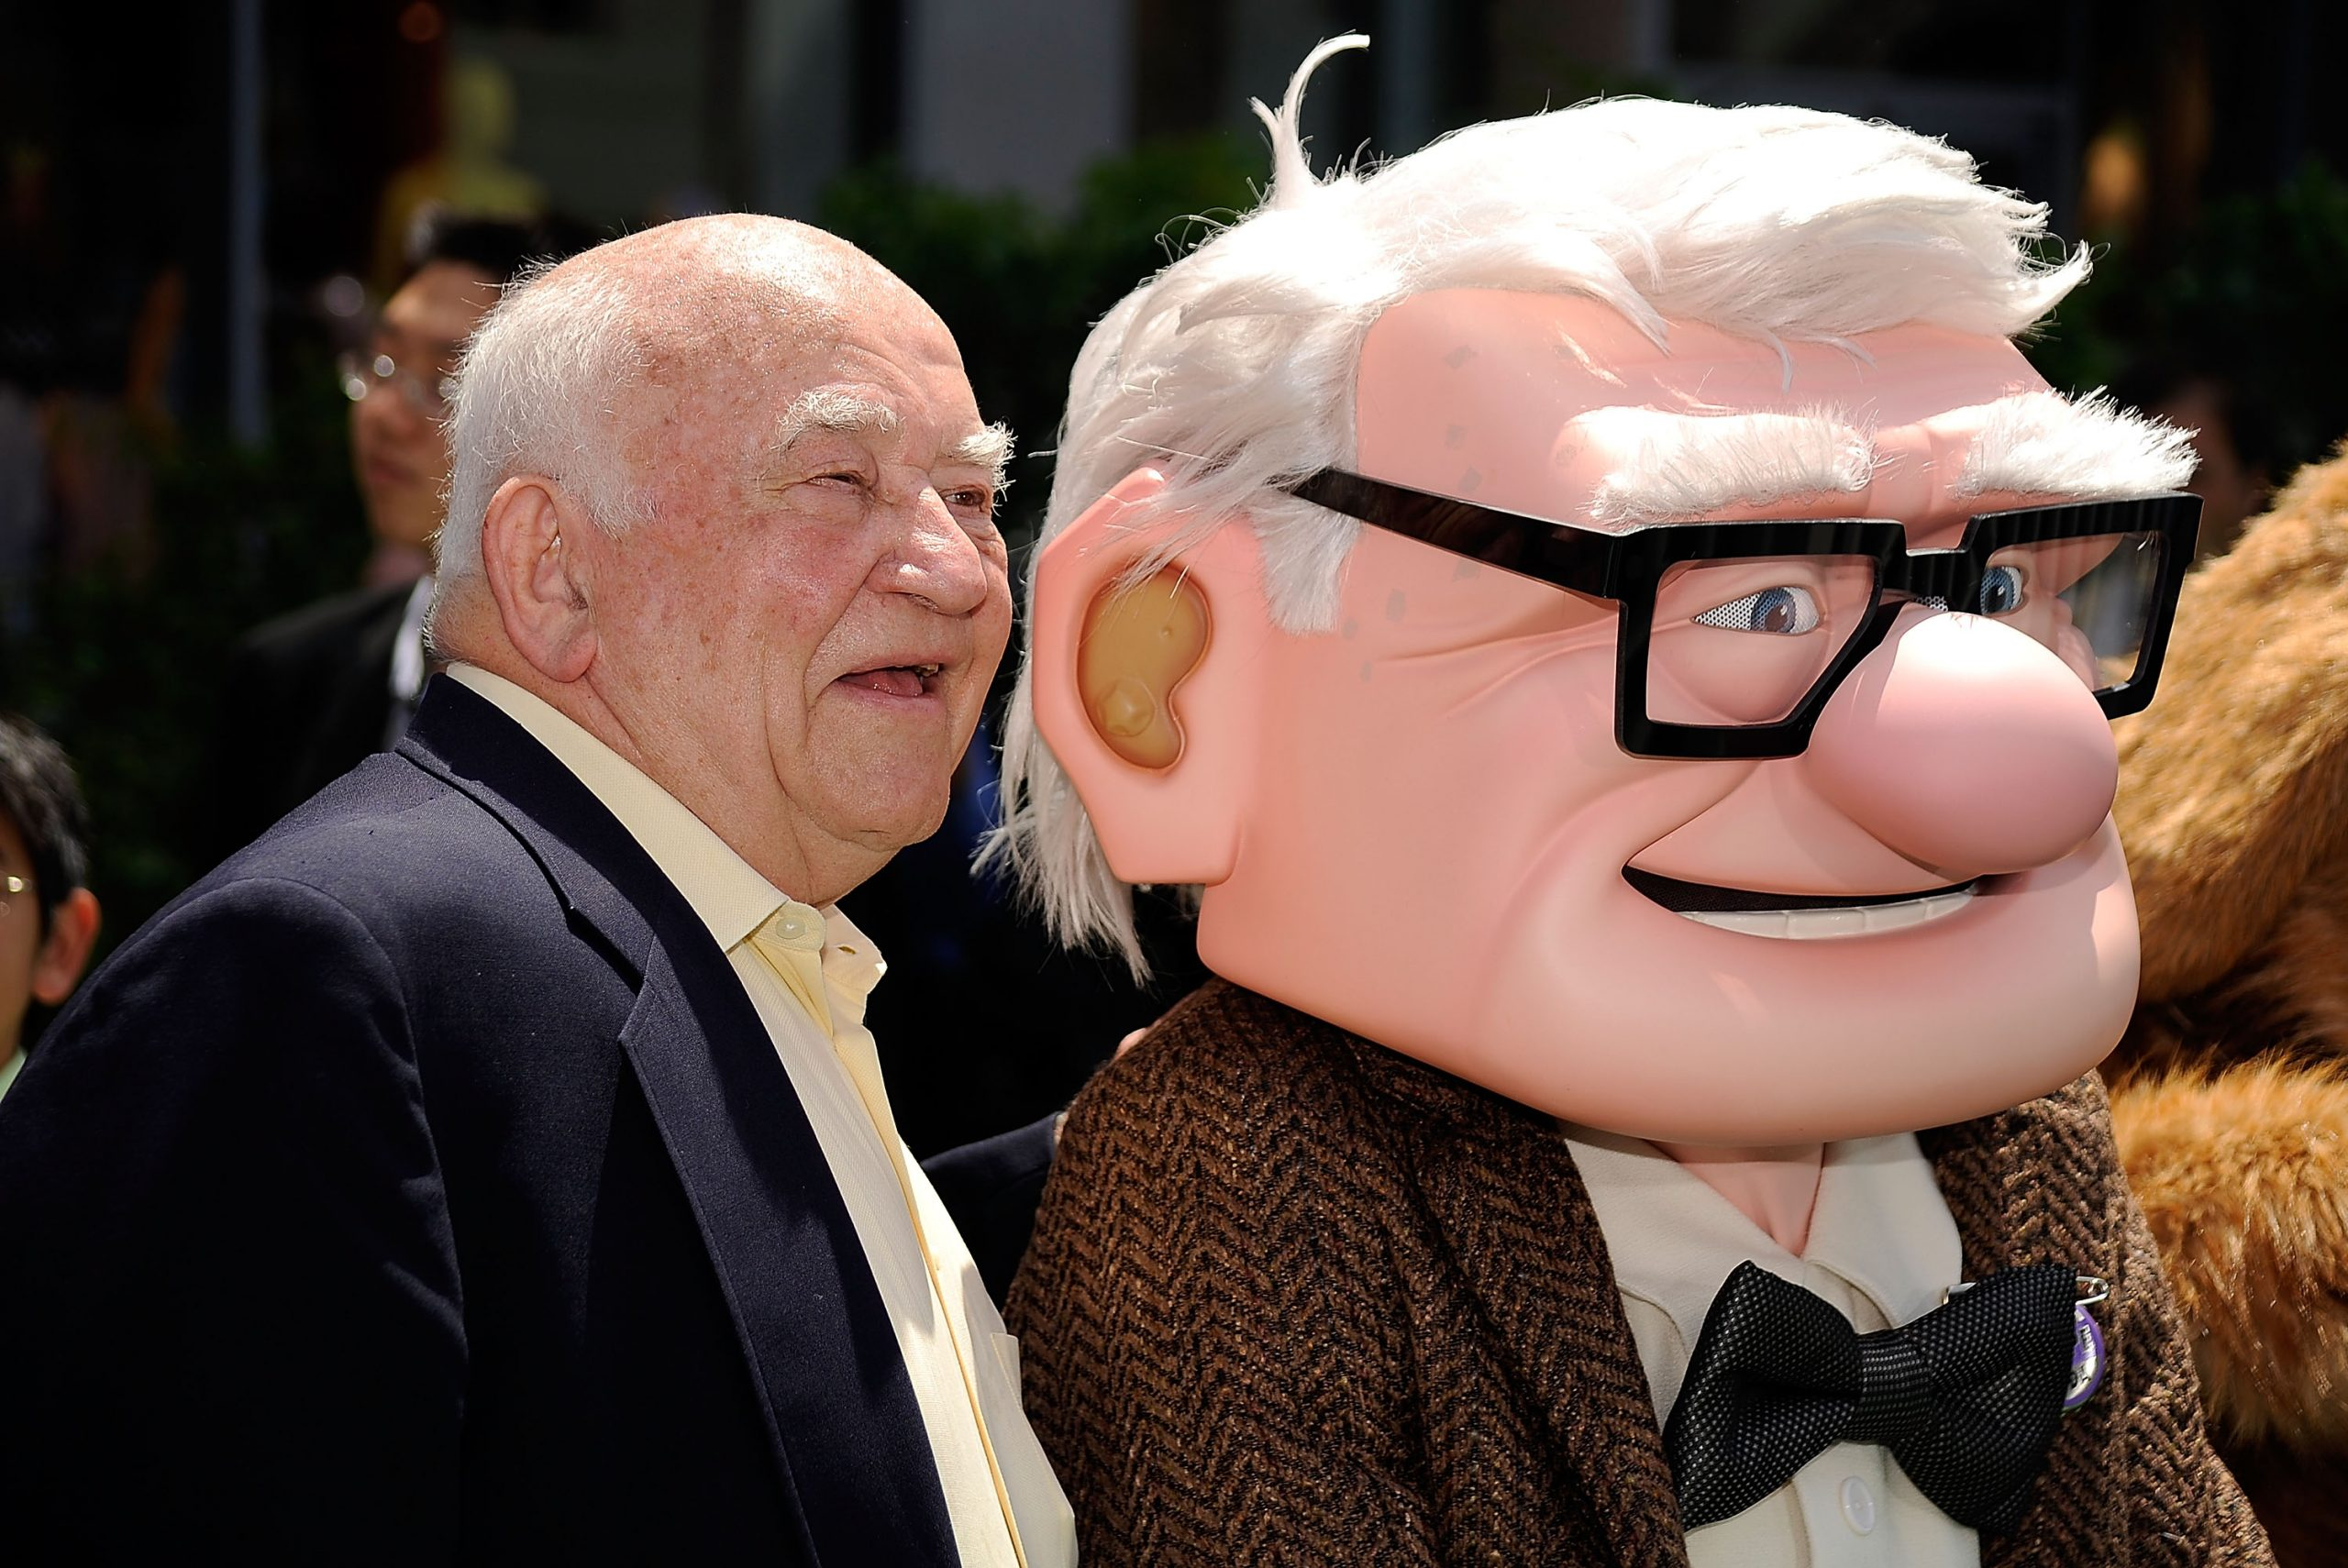 The late actor Ed Asner with his 'Up' character, Carl Fredricksen